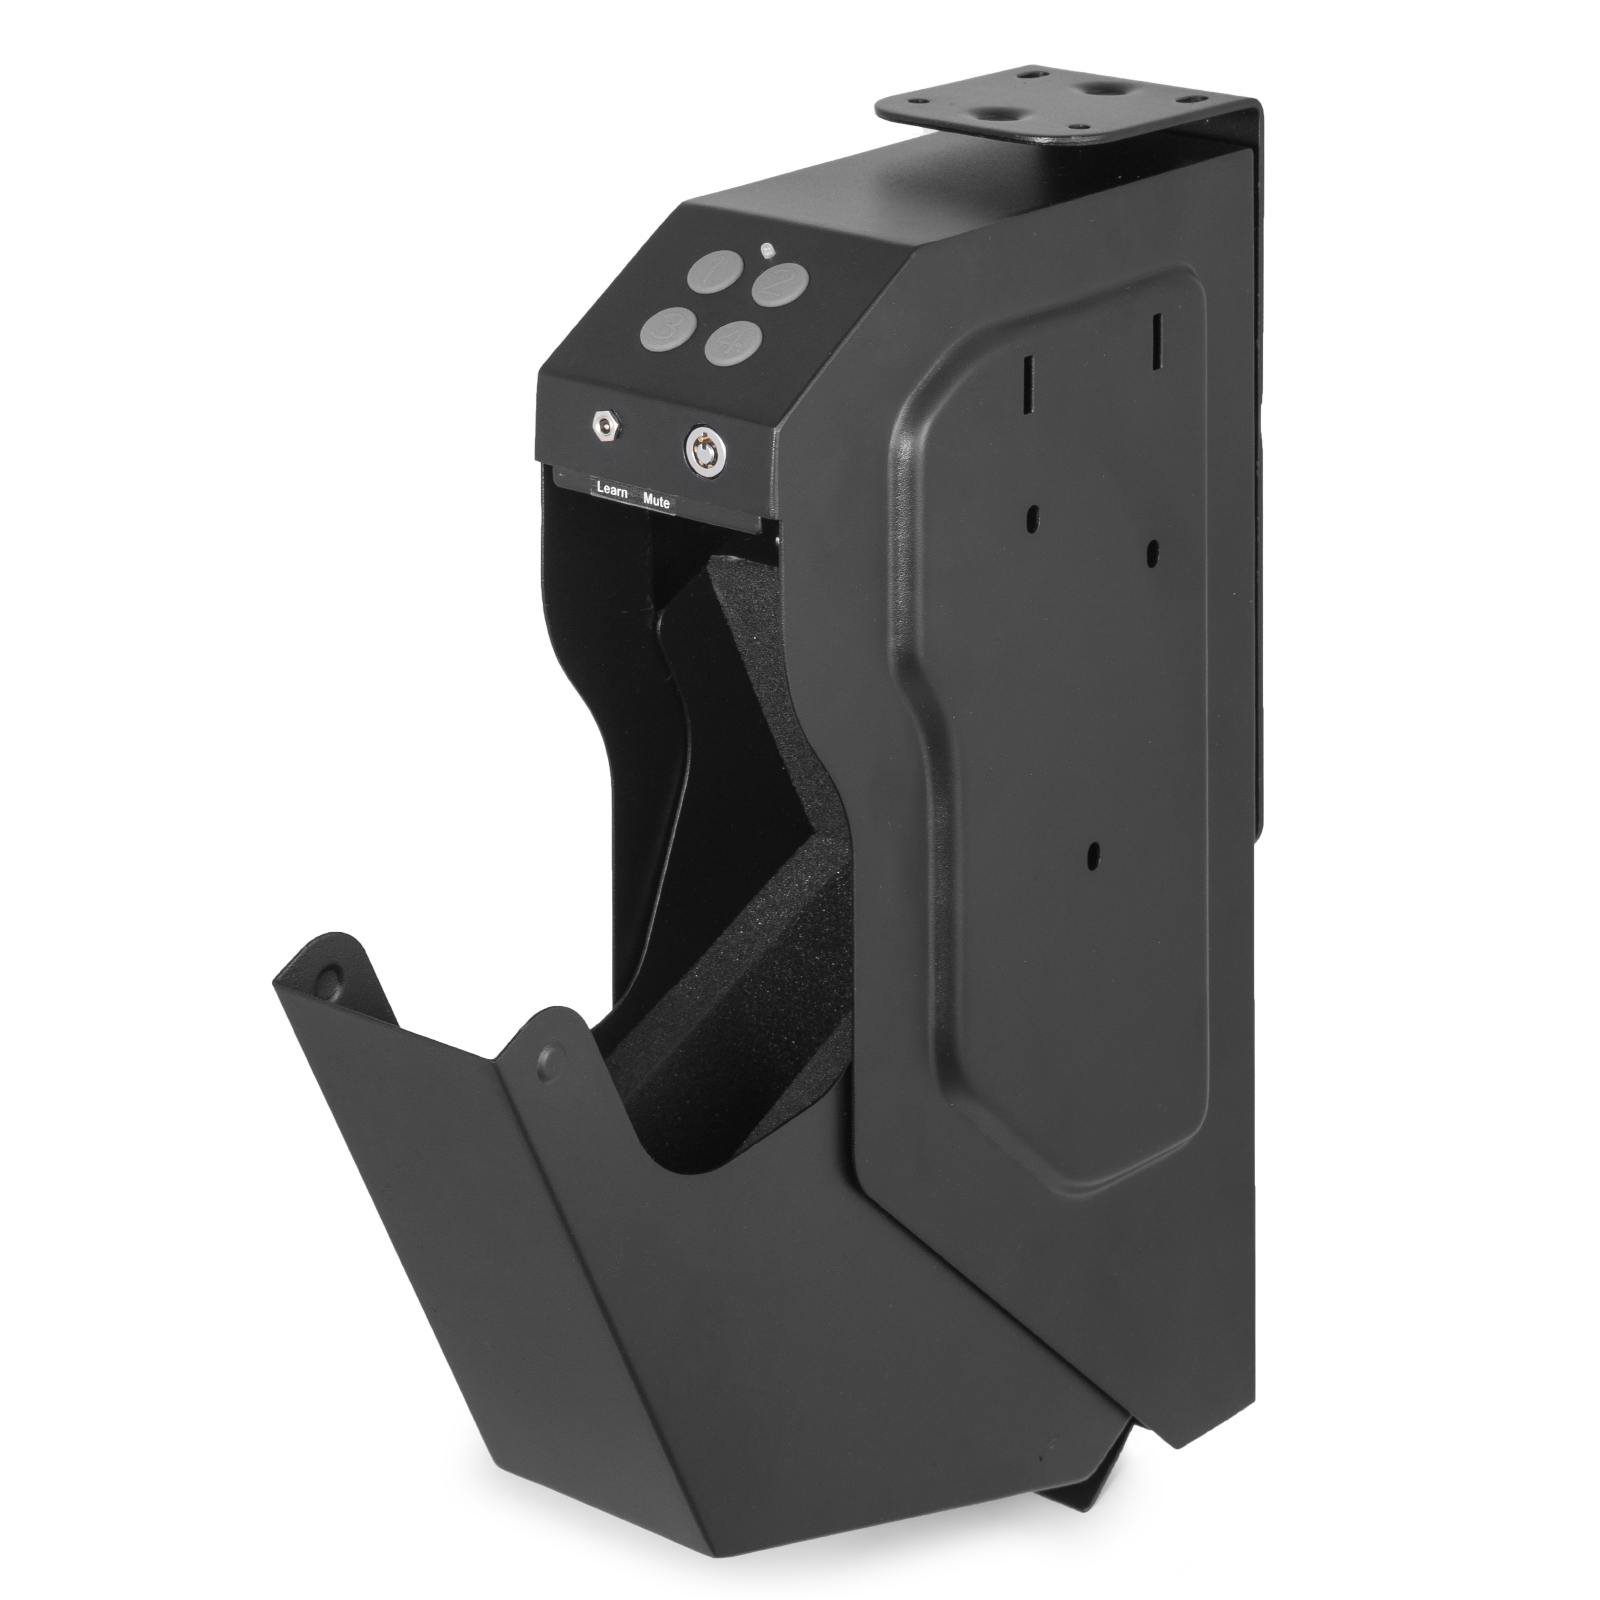 Gun-Safe-Pistol-Handgun-Safe-Single-Quick-Access-Electronic-Security-Keypad-Lock thumbnail 3